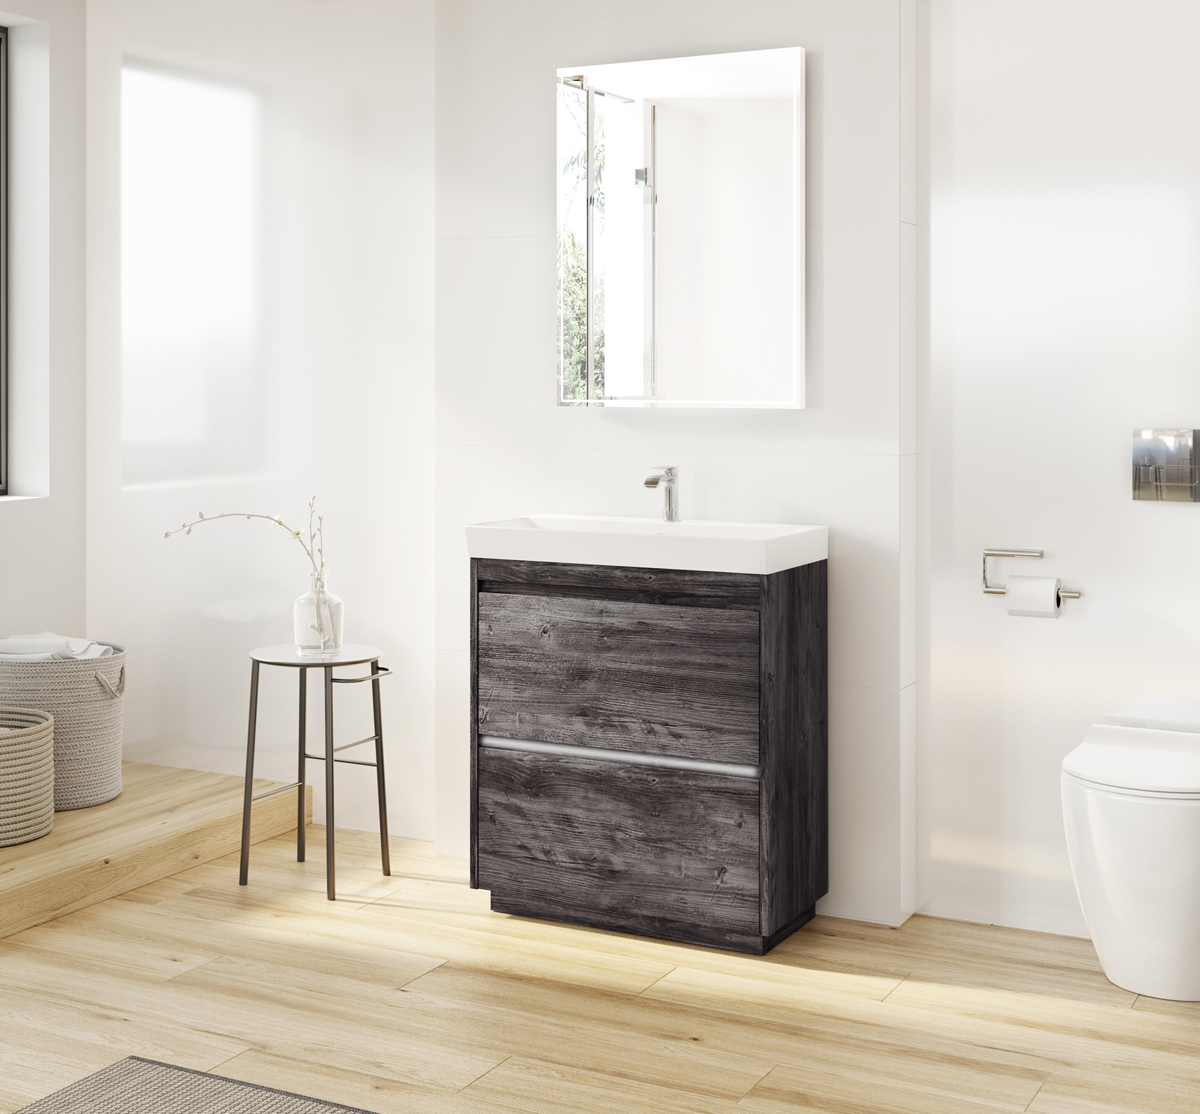 Zion 70 floor standing unit basin in zion luxury for Modern zion kitchen